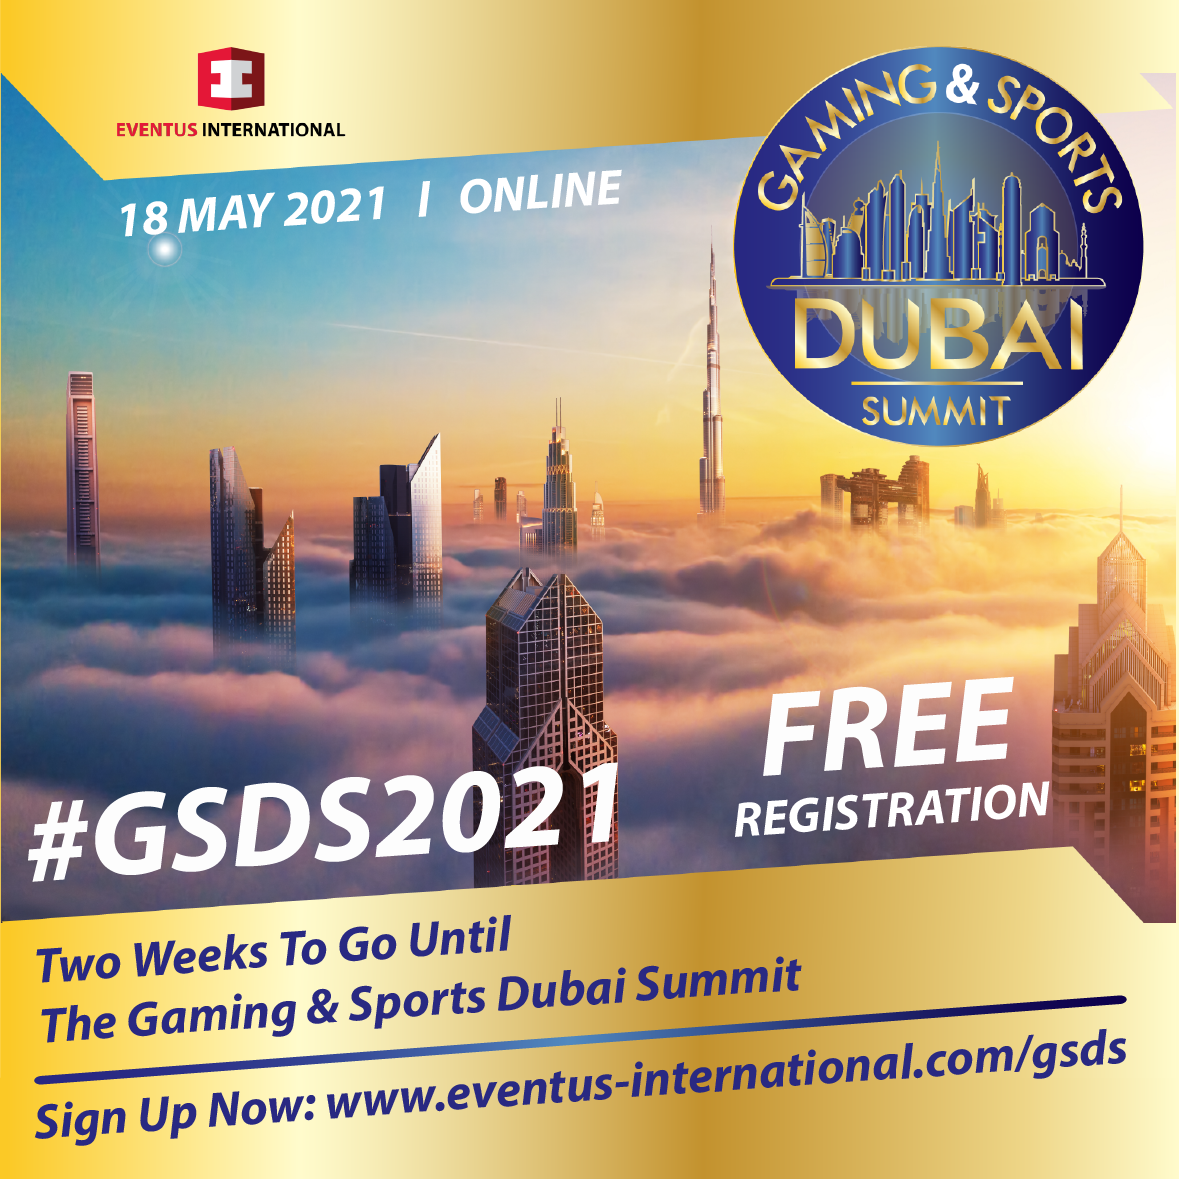 GSDS Online Press Release: Dubai Summit Gaming Sports Preview Event Trends